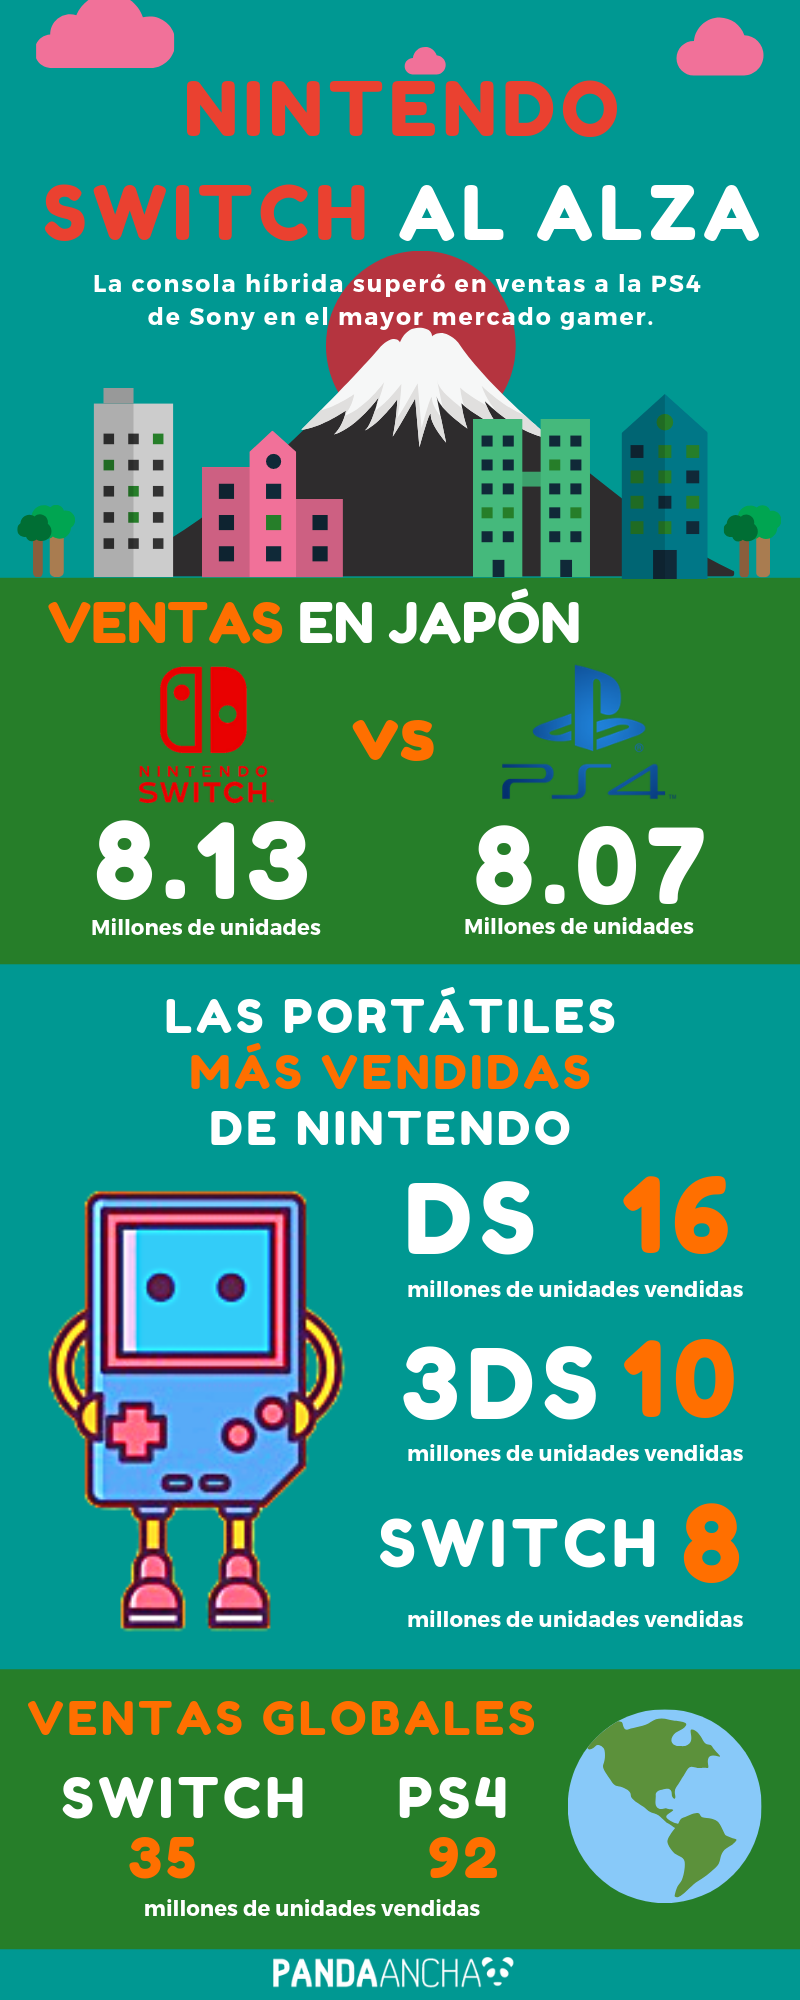 Infografía: Nintendo Switch supera ventas de PS4 en Japón